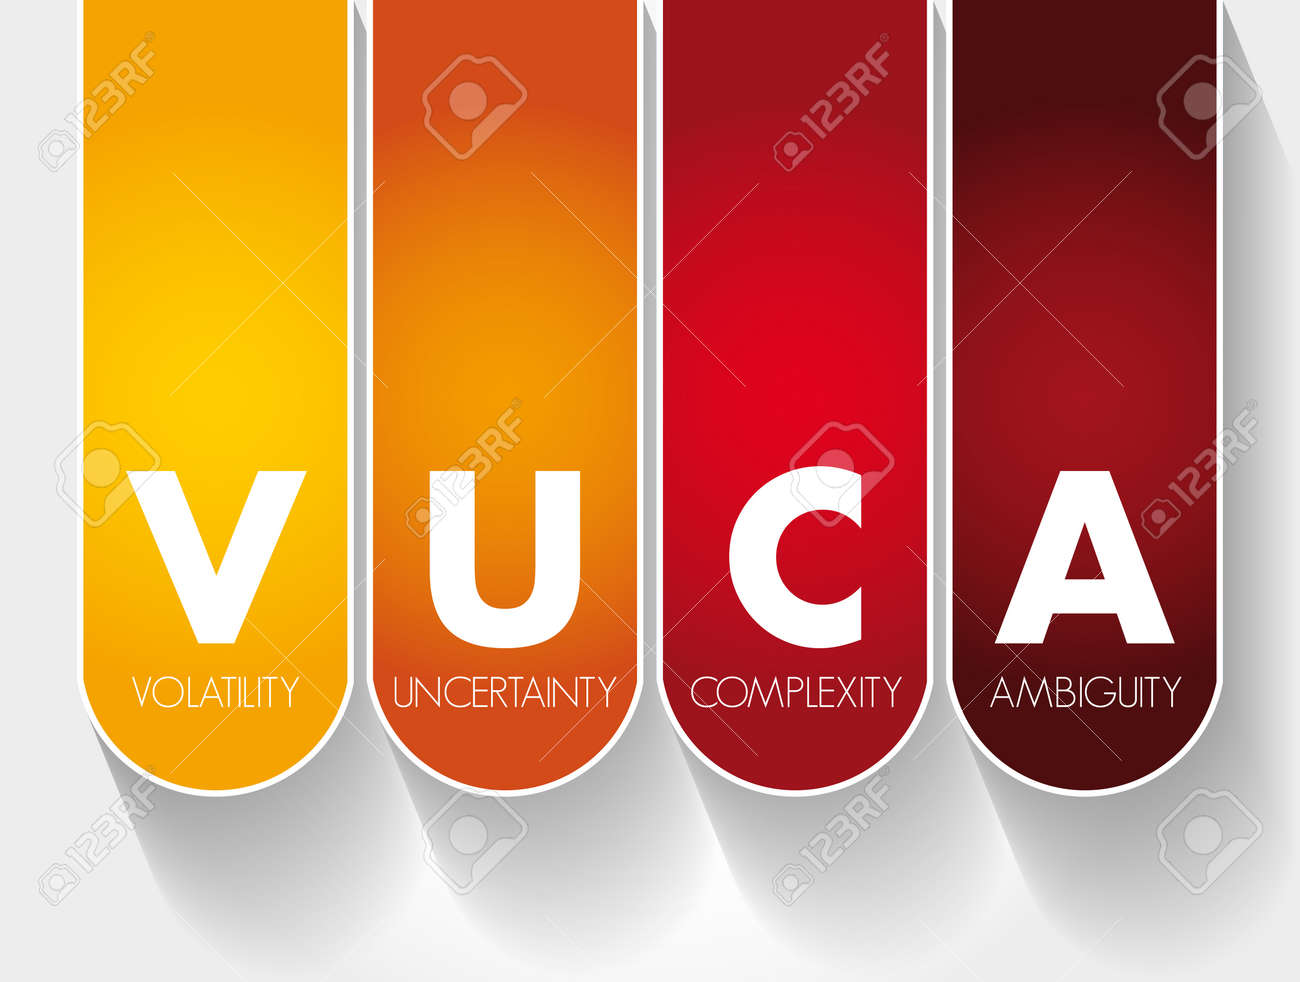 VUCA - Volatility, Uncertainty, Complexity, Ambiguity acronym, business concept background - 165003169